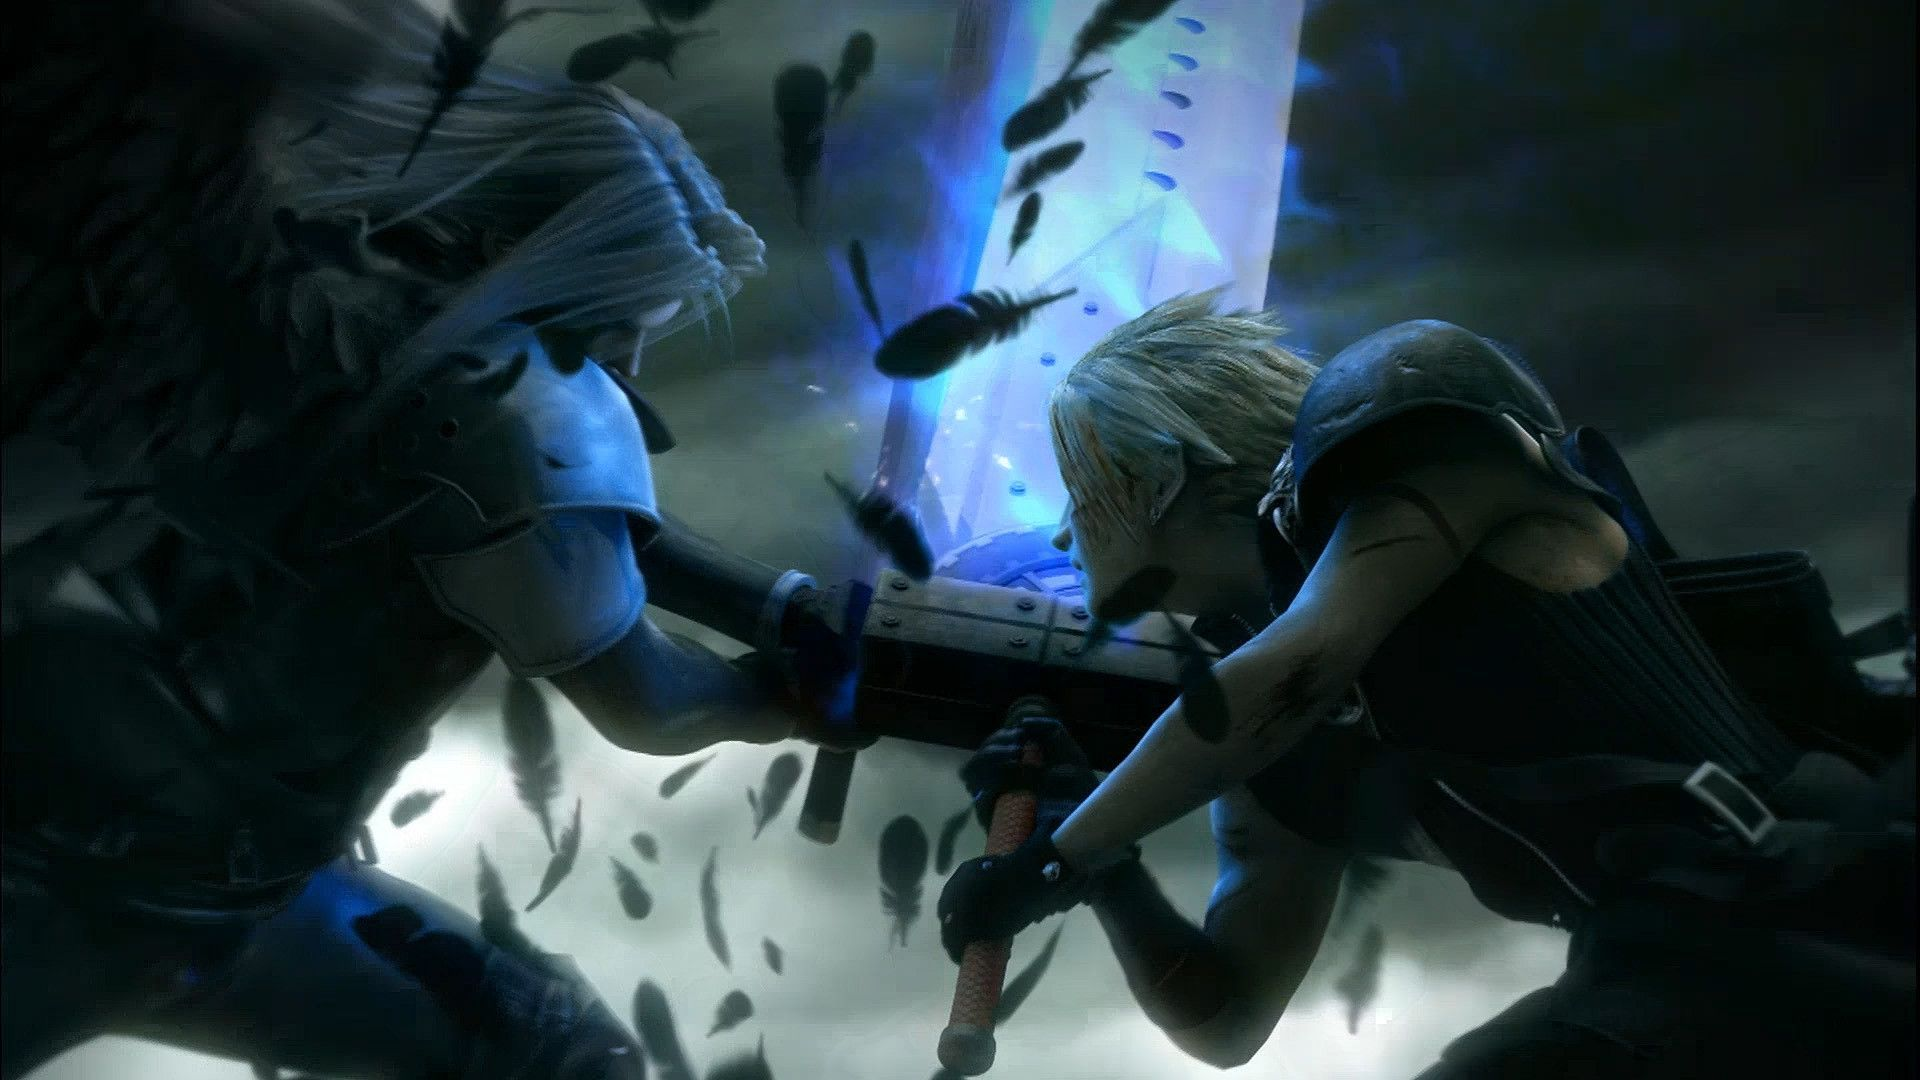 Final Fantasy Vii 1920 1080 Ff7 Wallpapers 45 Wallpapers